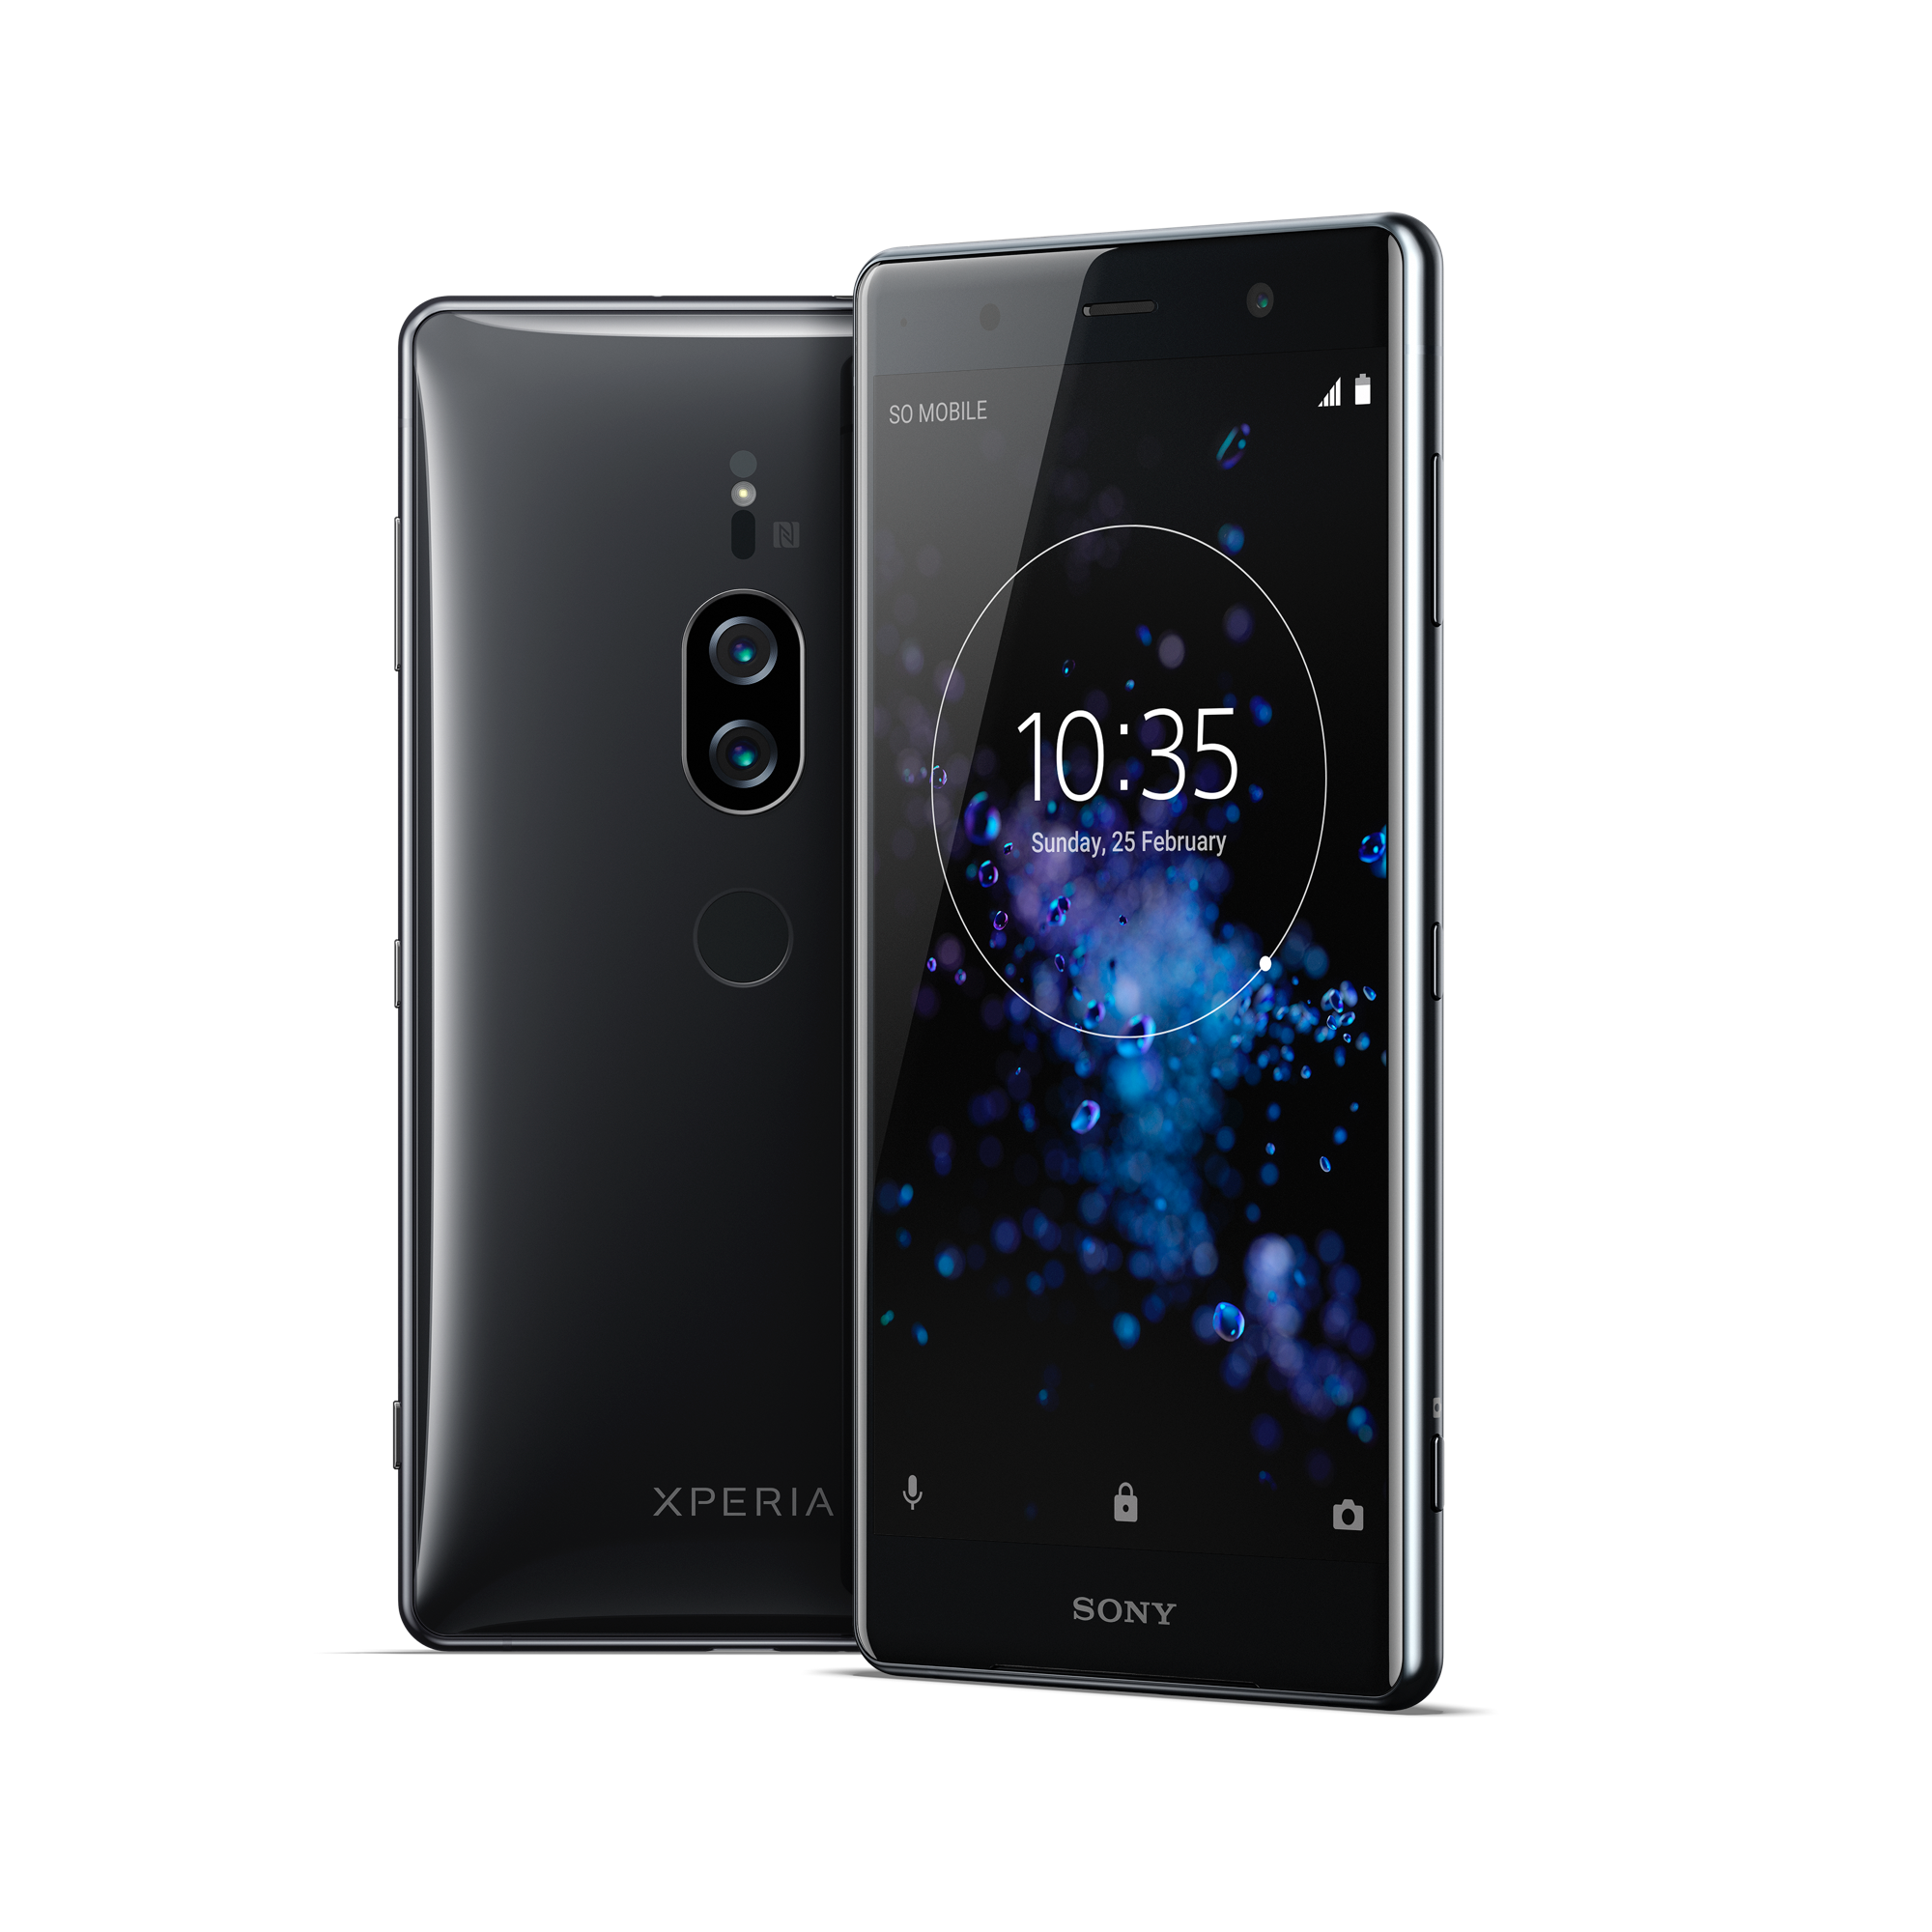 Sony Xperia XZ2 Premium updated to Android 9 Pie